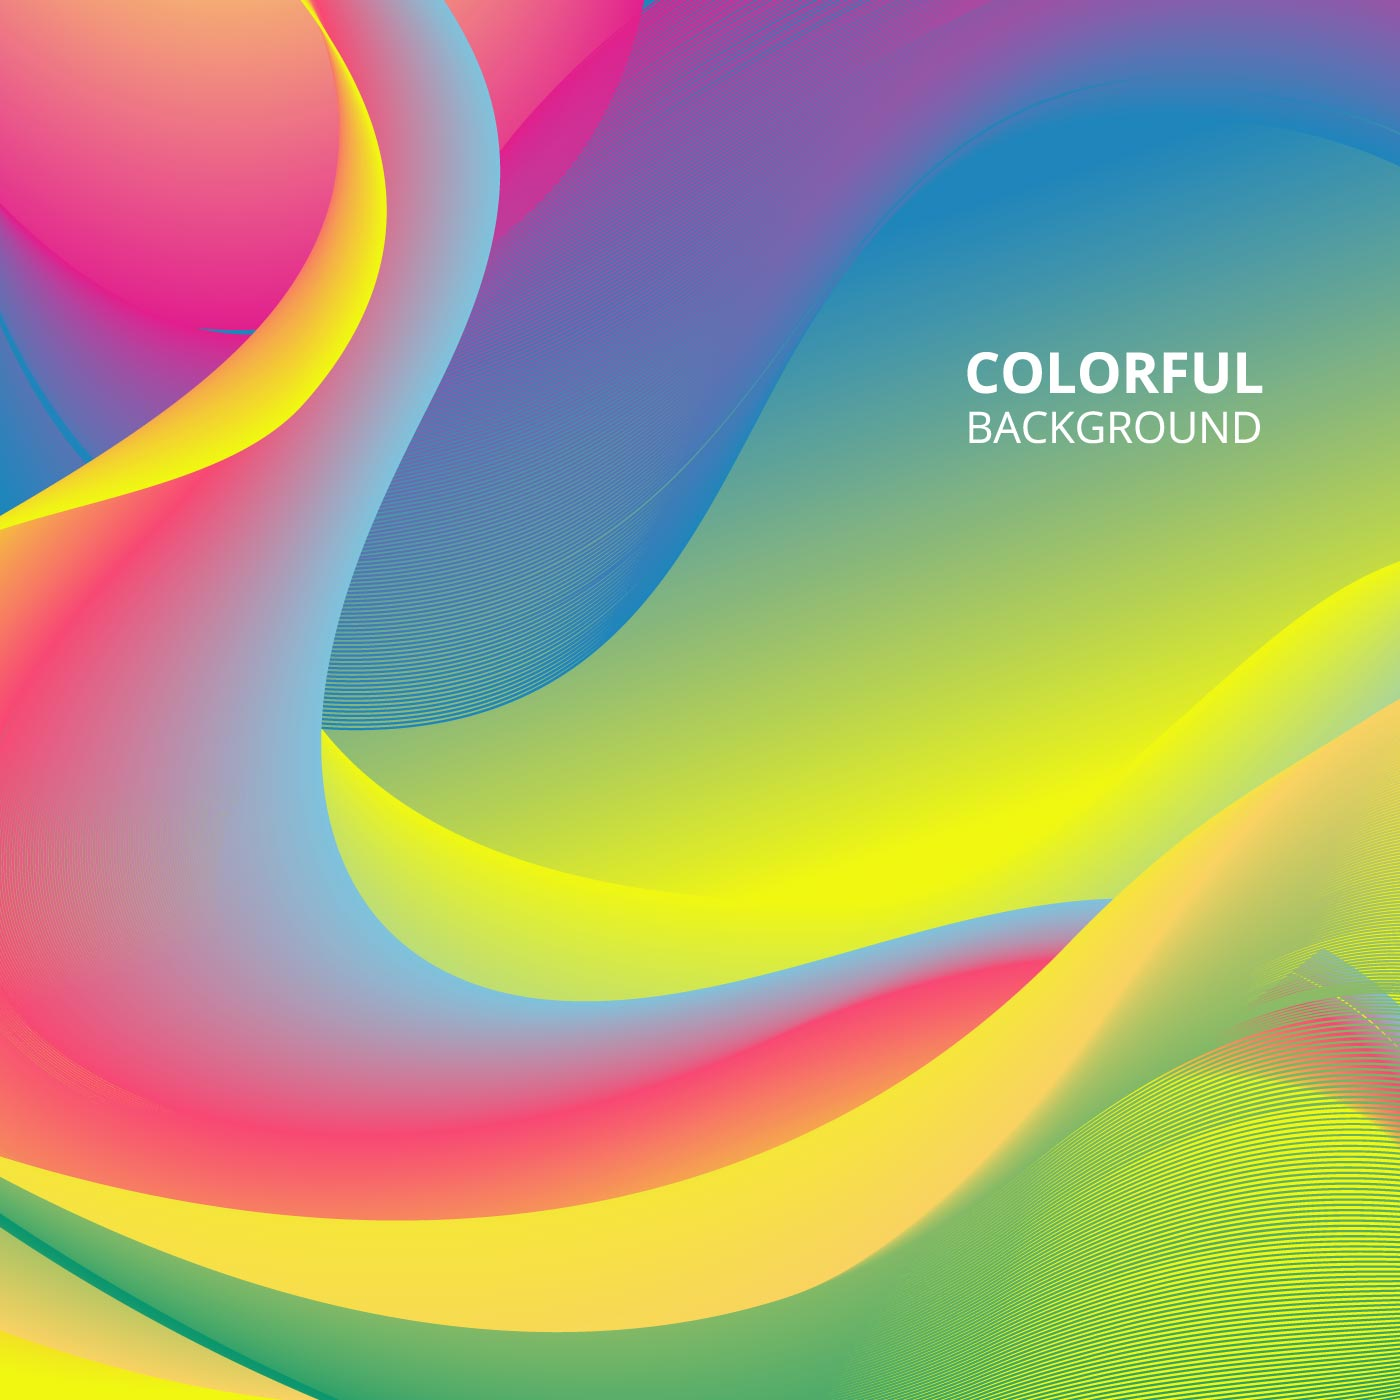 Colorful Background - Download Free Vectors, Clipart ...